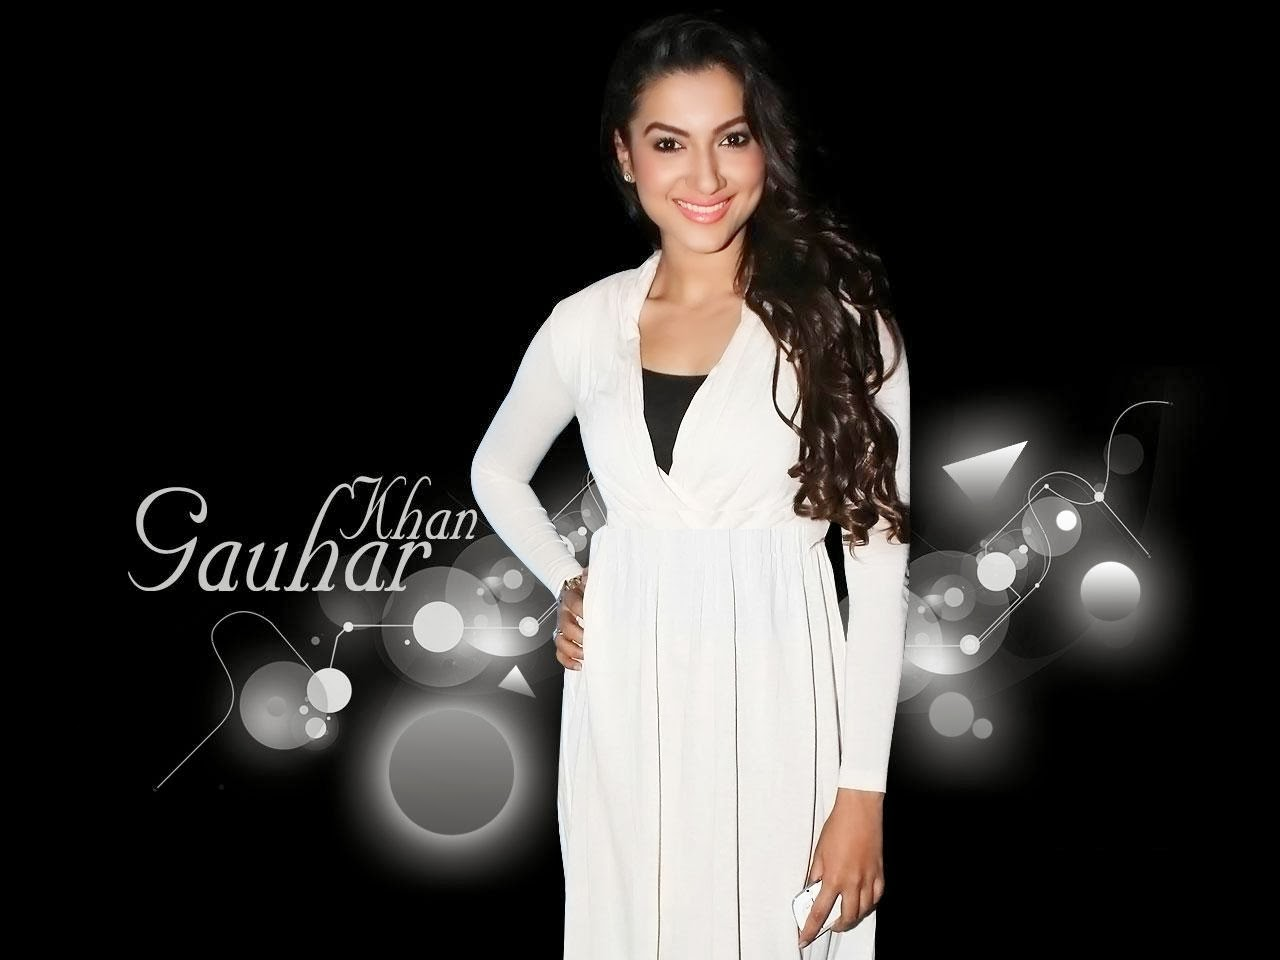 gauhar khan wallpapers - photo #13